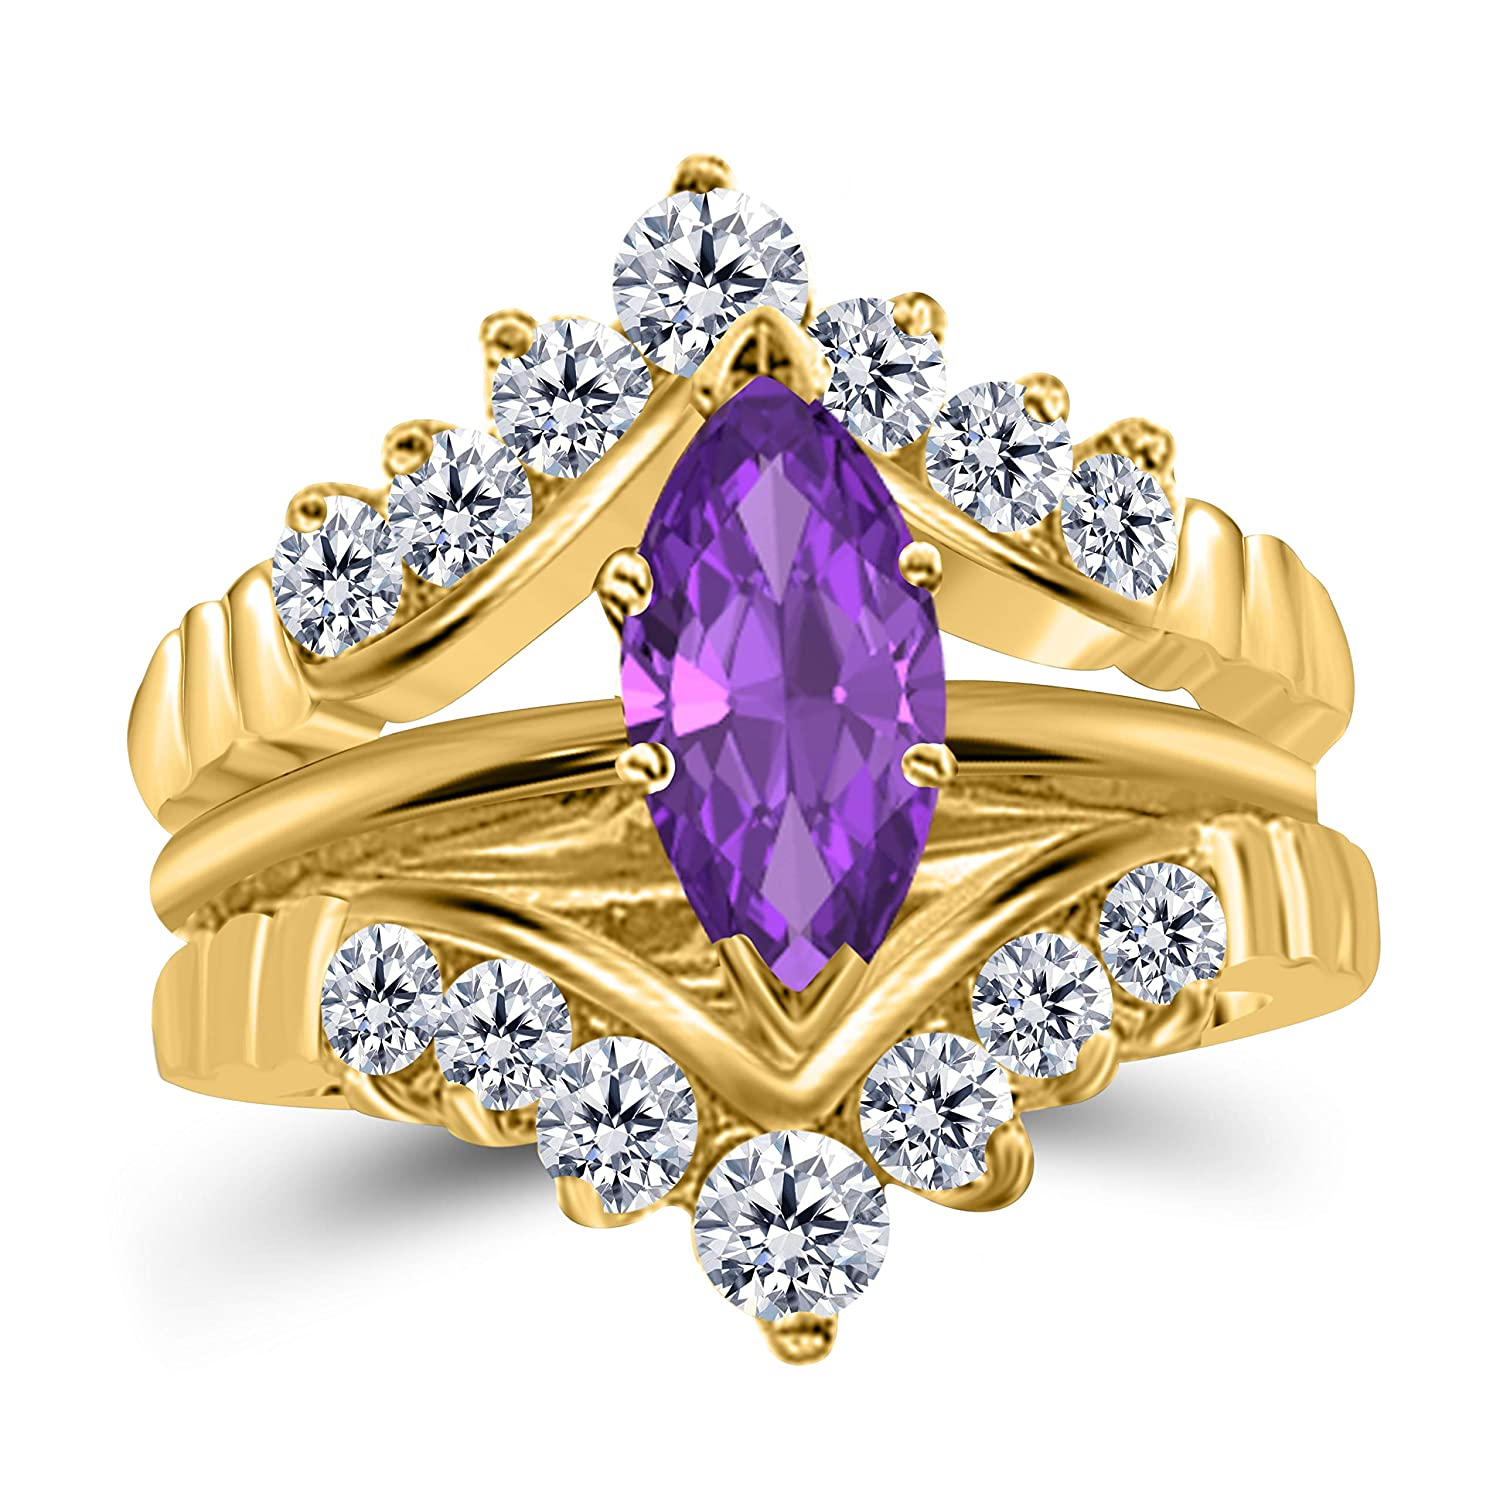 Gems and Jewels 0.75 Ct Marquise Solitaire Engagement Wedding Ring Band Set Enhancer Amethyst 14k Yellow Gold Plated Alloy